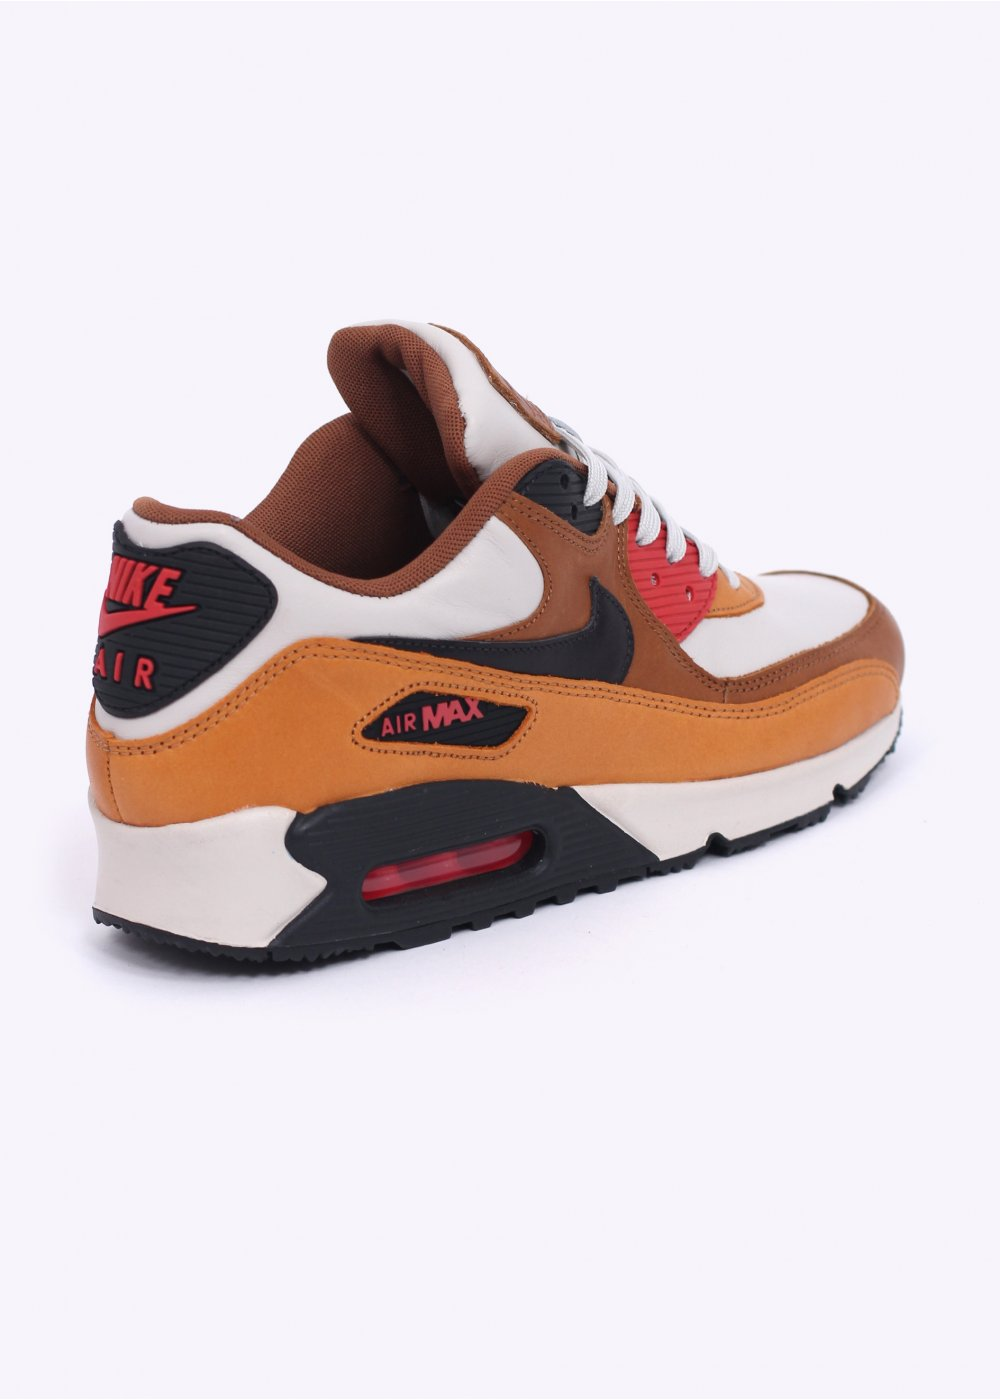 Nike Quickstrike QS Air Max 90 'Escape Pack' Light Bone Ale Brown Bronze Black Pine